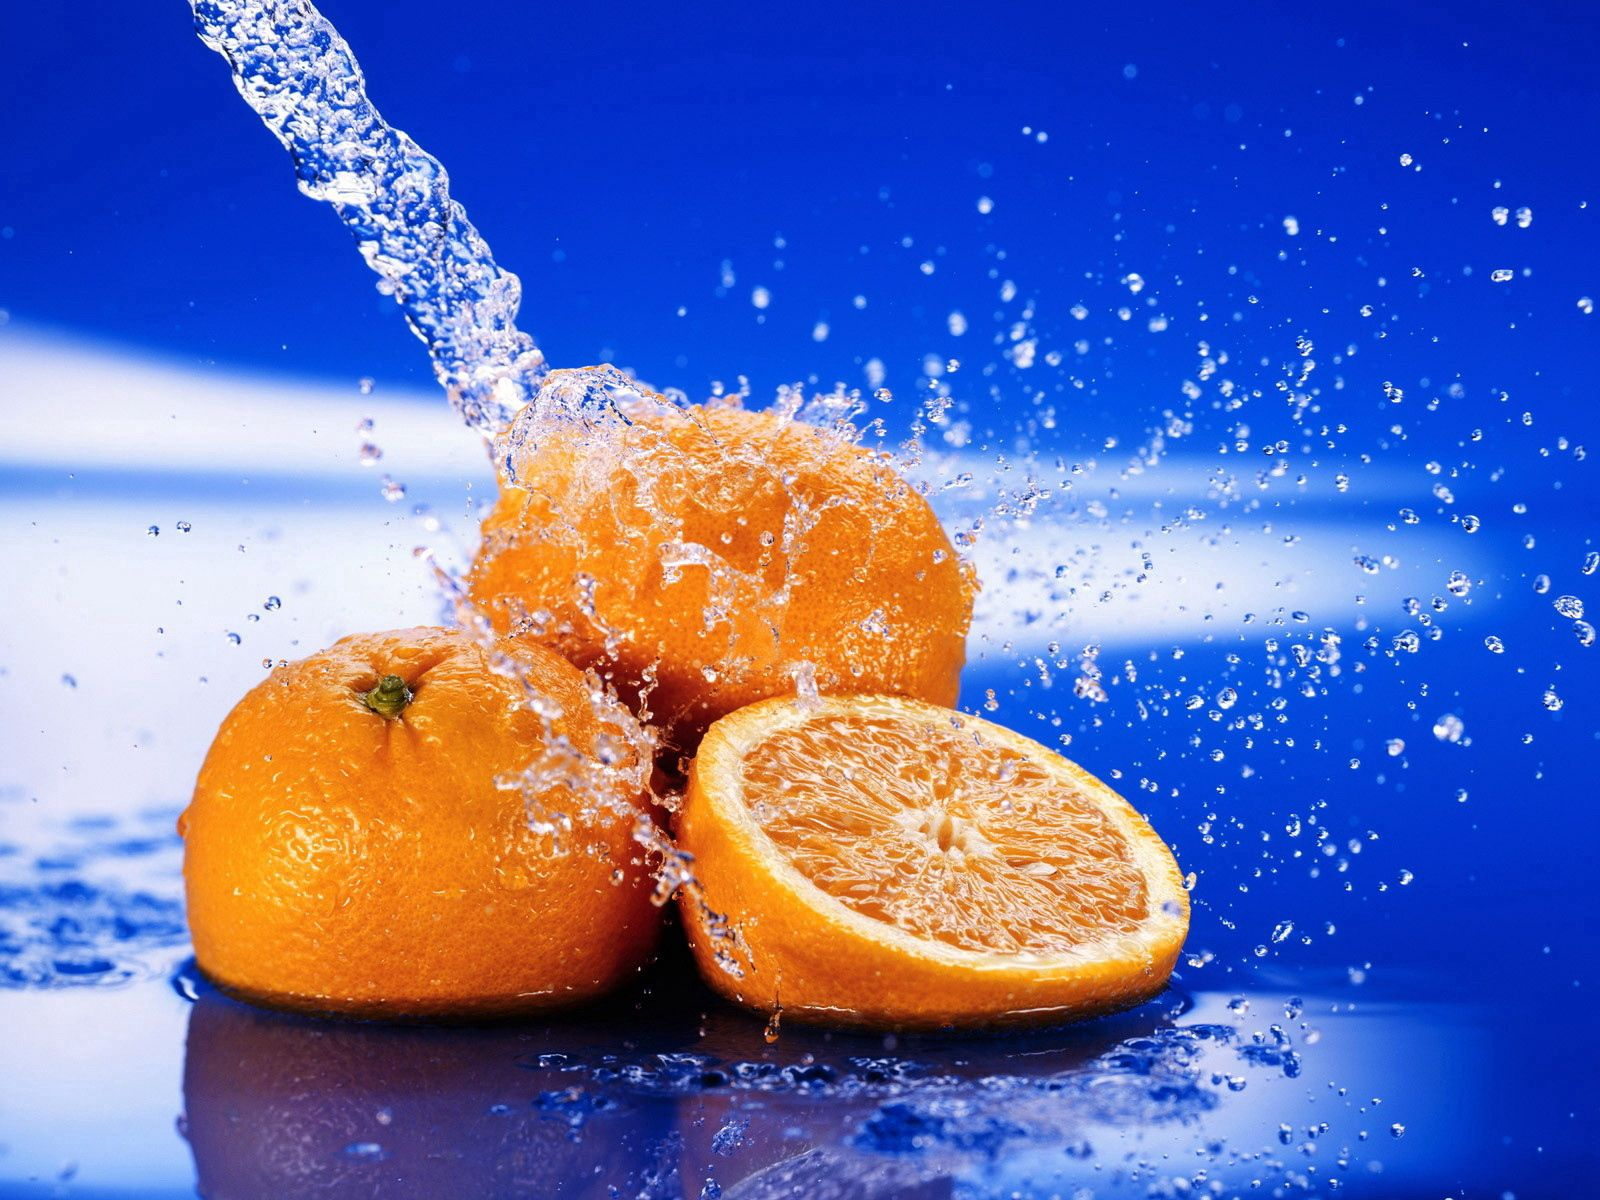 87637 download wallpaper Water, Food, Spray, Fruit, Slice, Section screensavers and pictures for free